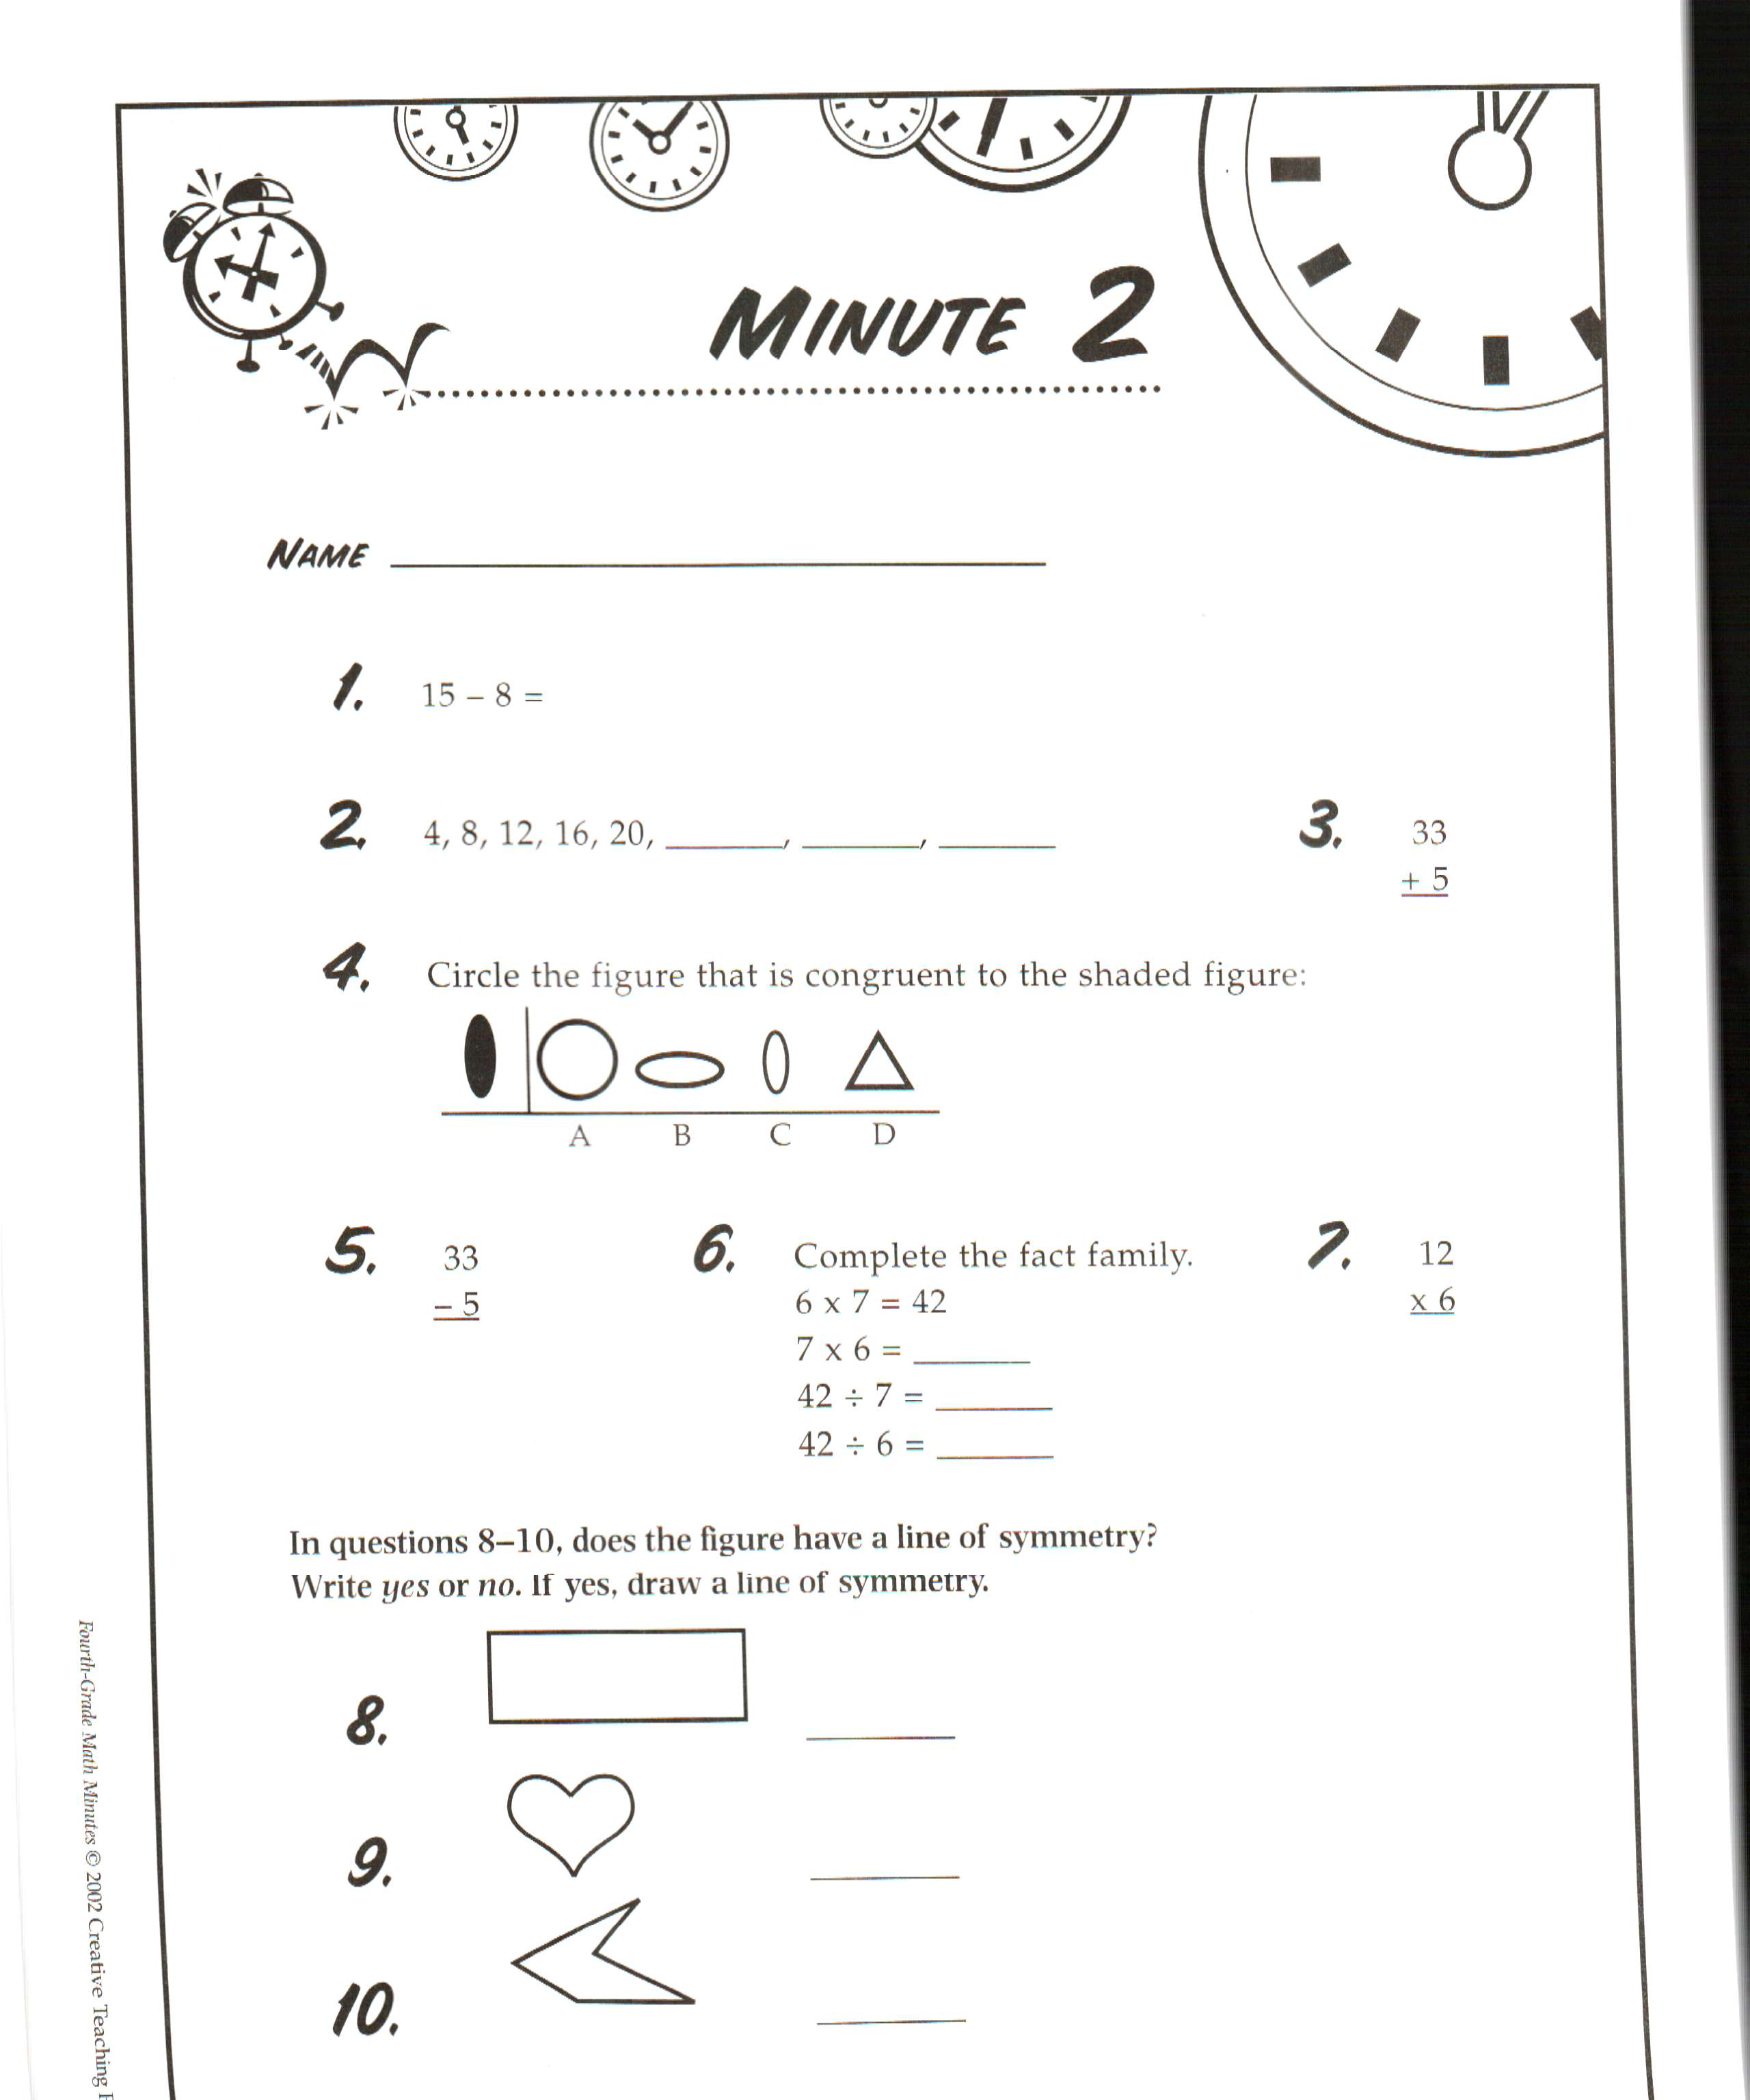 Printables Math Minute Worksheet 3rd grade daily math minutes mrs faoro download file